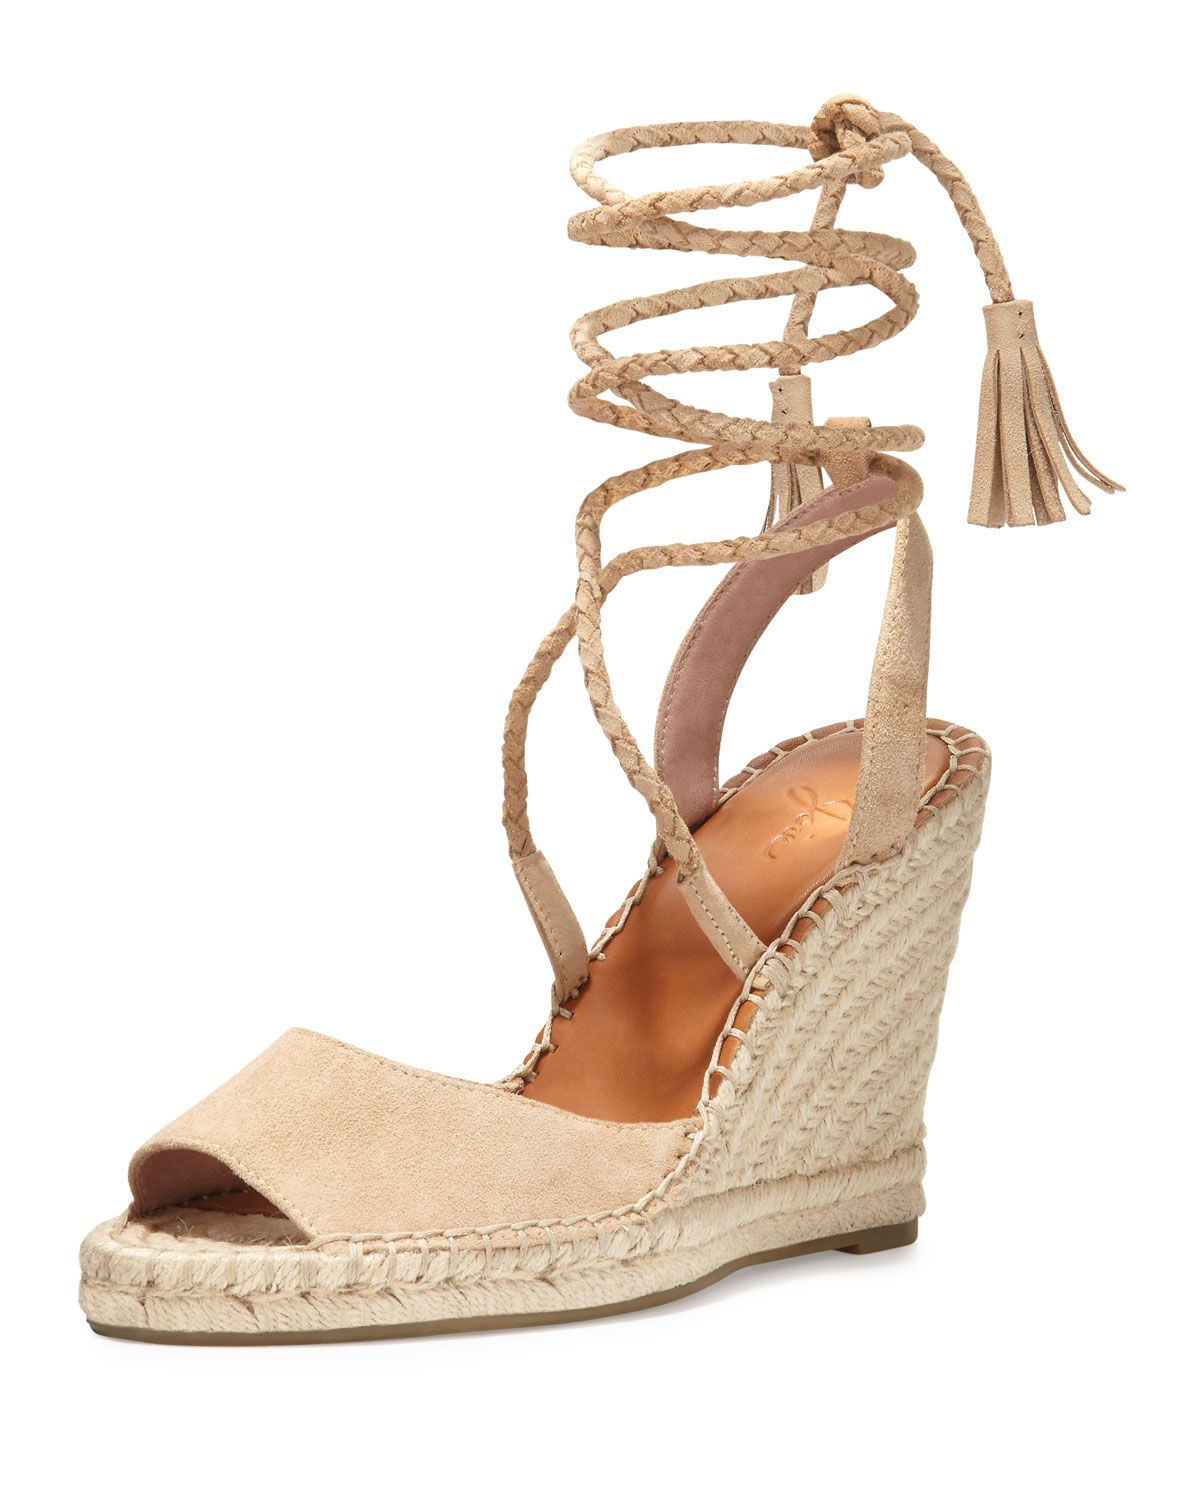 5cb3545866 Phyllis Suede Lace-Up Wedge Espadrille Sandal, Buff, Women's, Size:  36.0B/6.0B - Joie